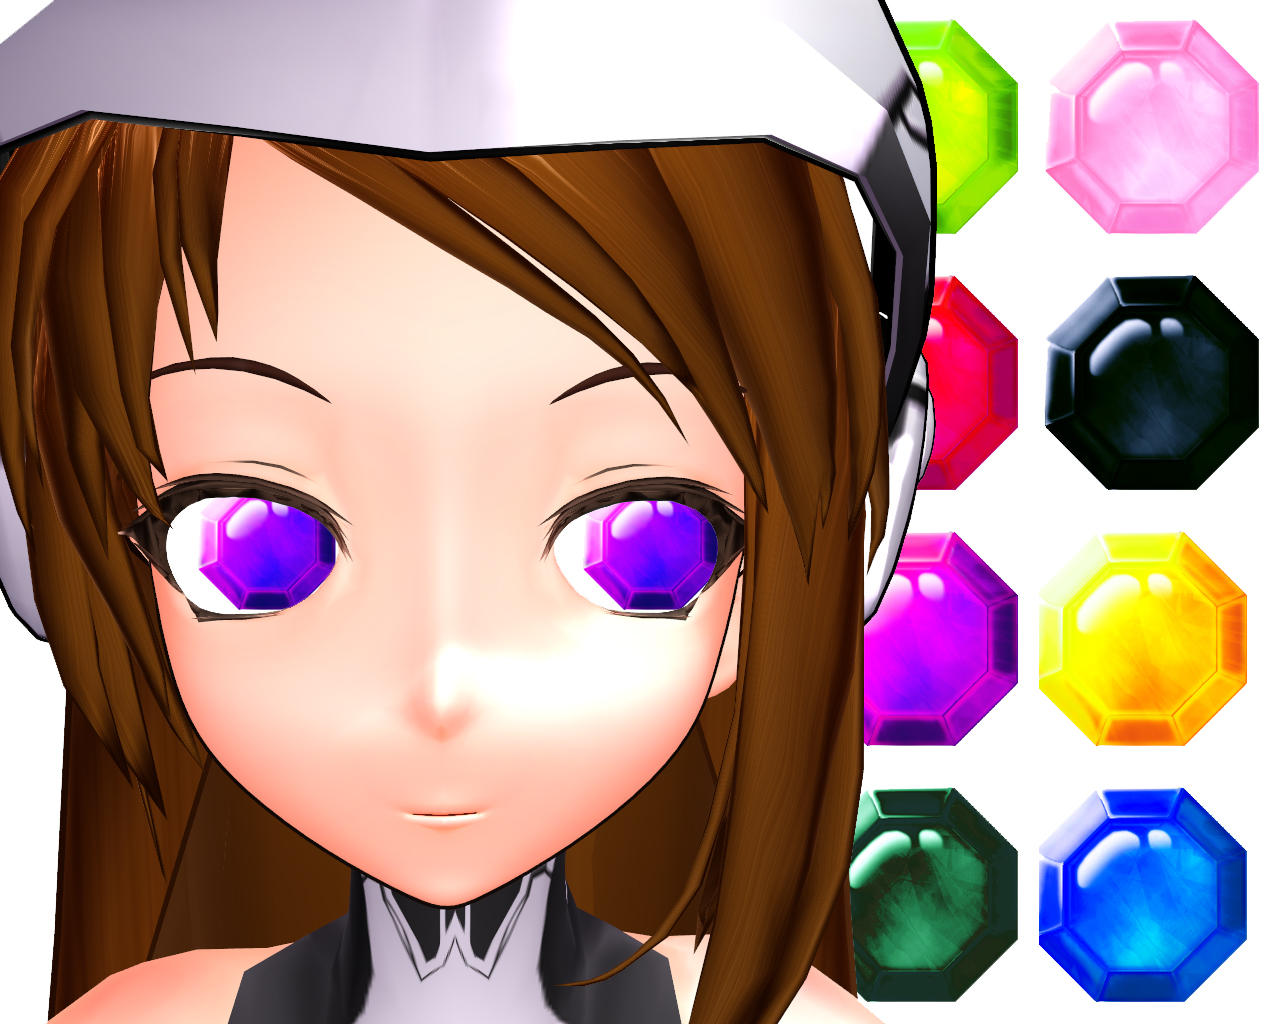 MMD Gemstone Eye Texture by Xoriu